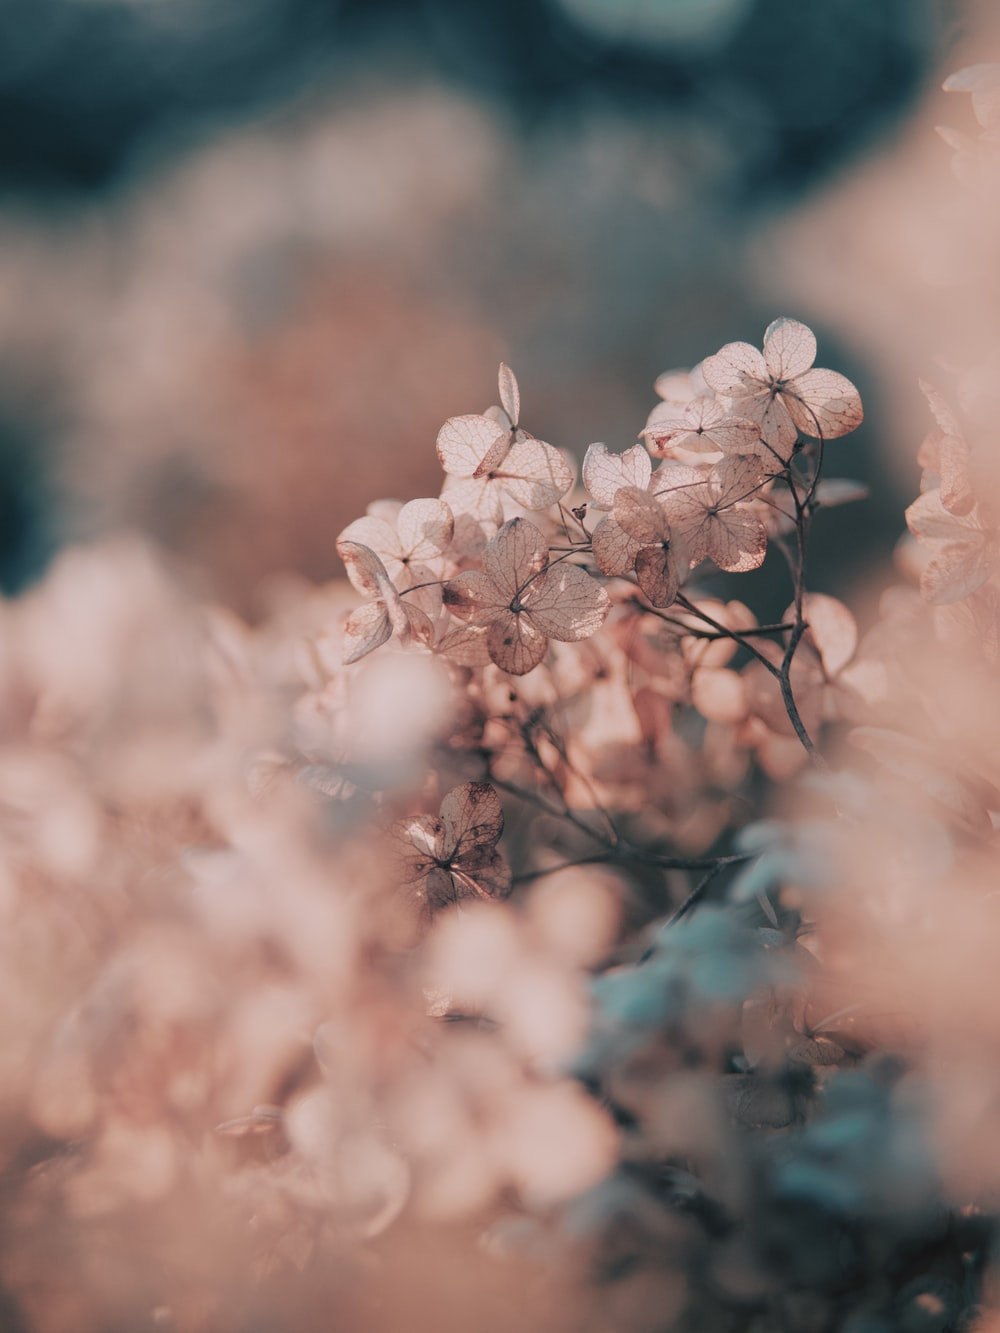 white cherry blossom in close up photography